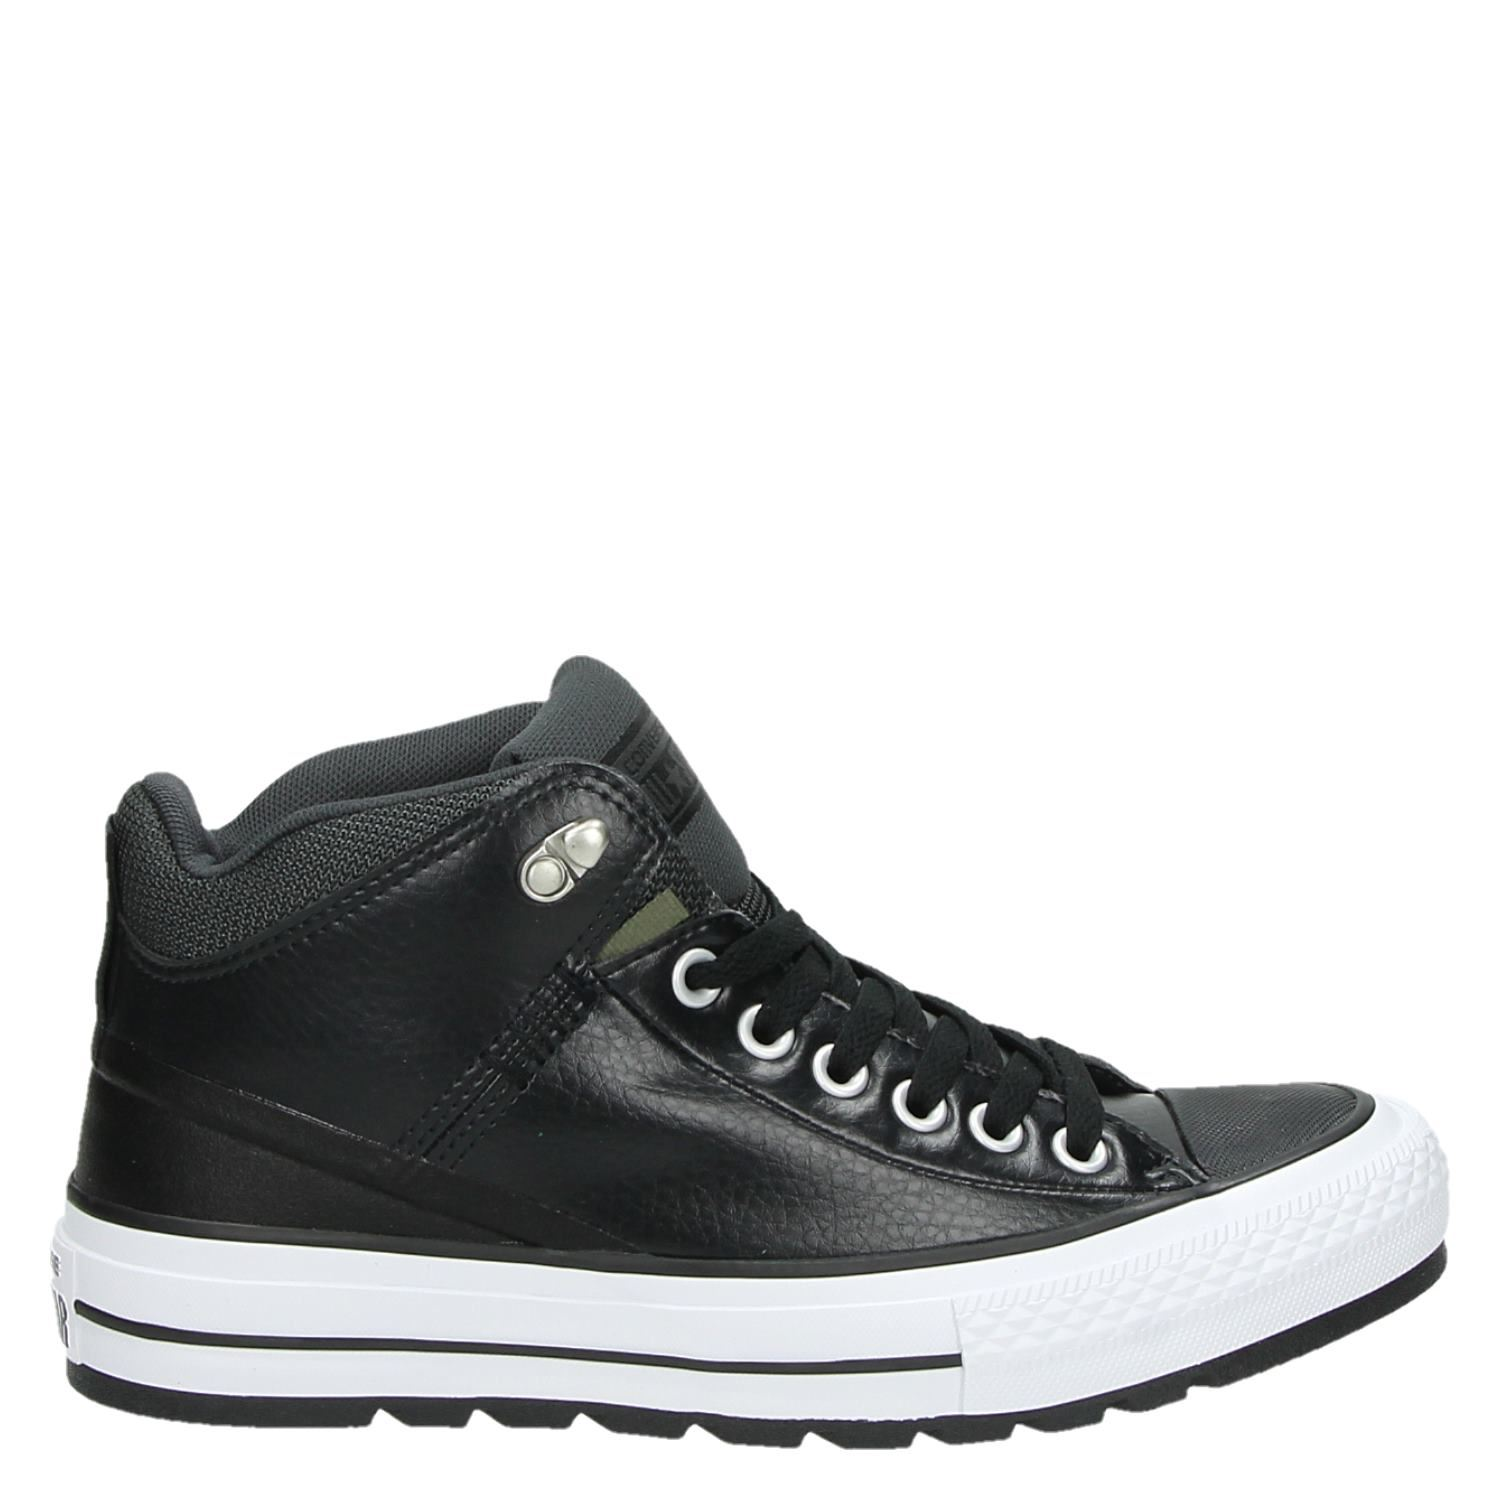 b4a025f3306 Converse All Star heren veterboots zwart